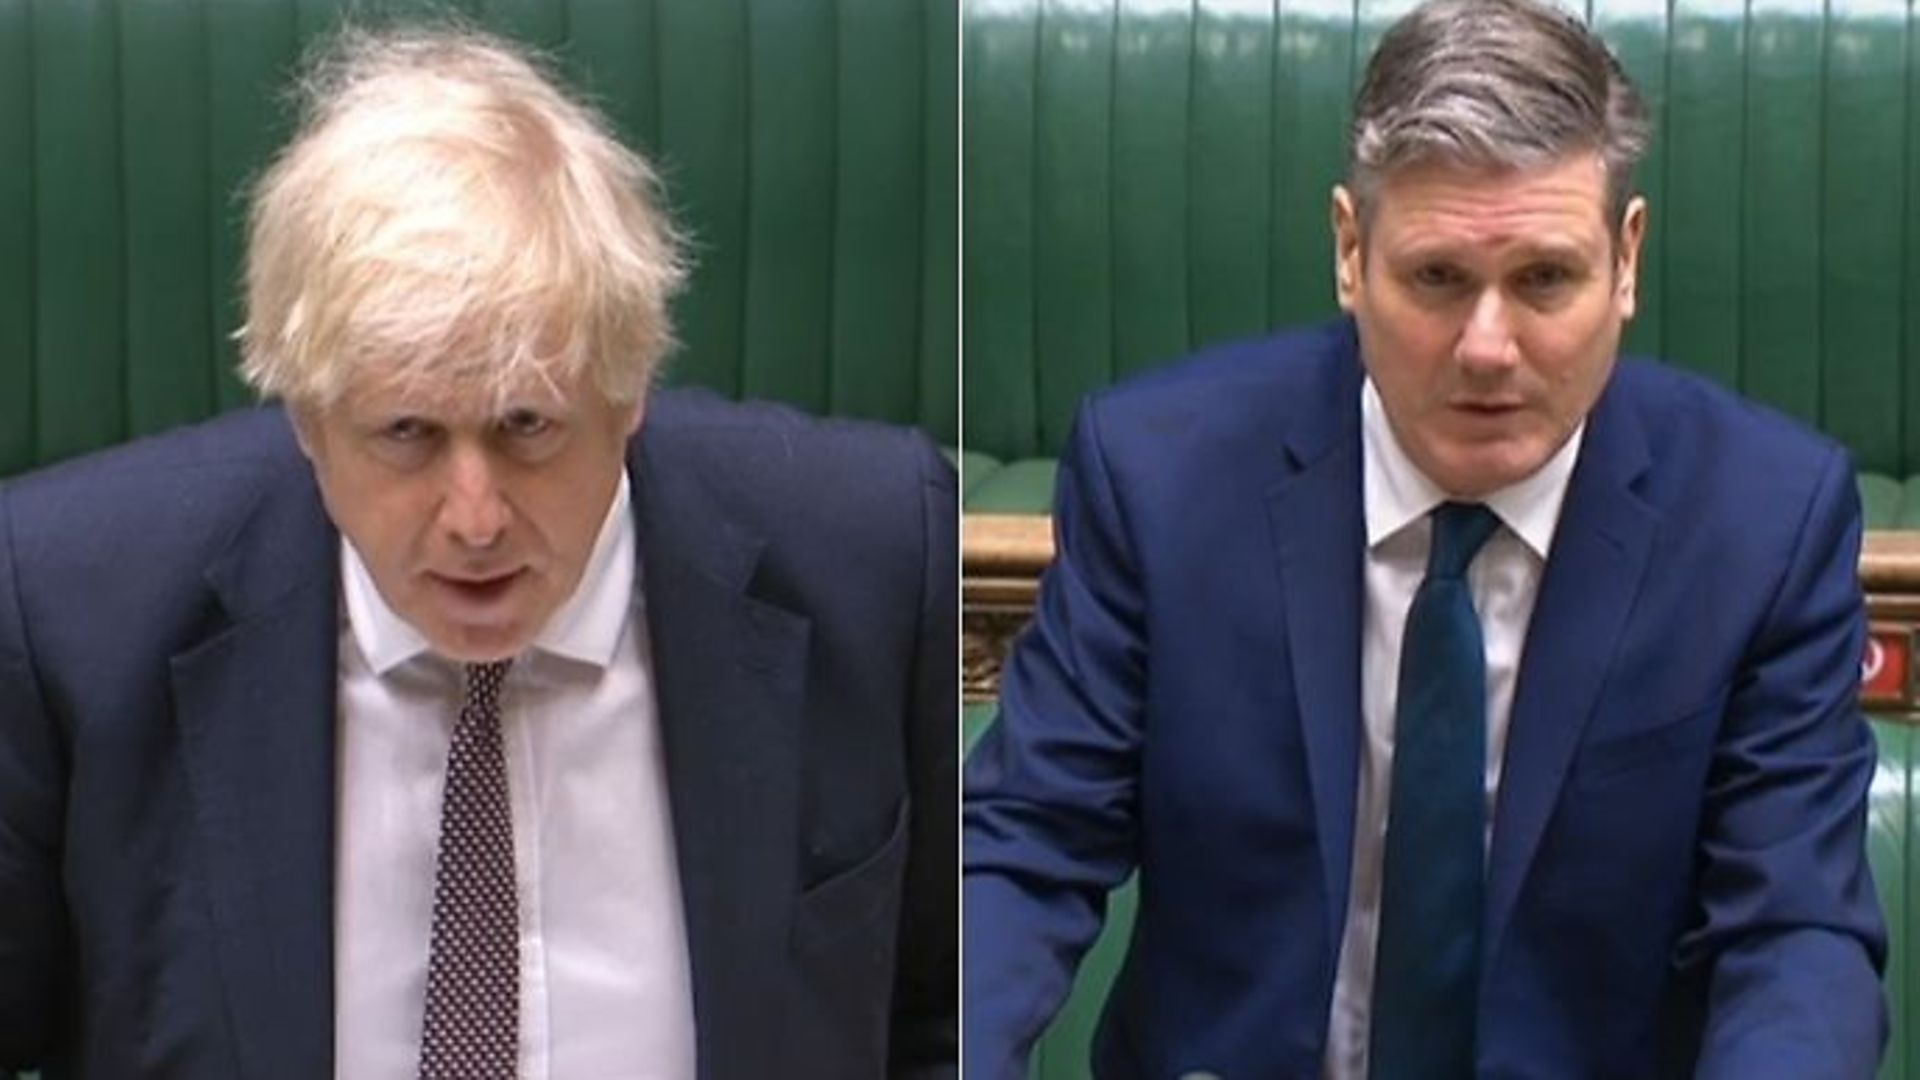 Boris Johnson (L) and Sir Keir Starmer during a session of Prime Minister's Questions (PMQs) - Credit: Parliamentlive.tv